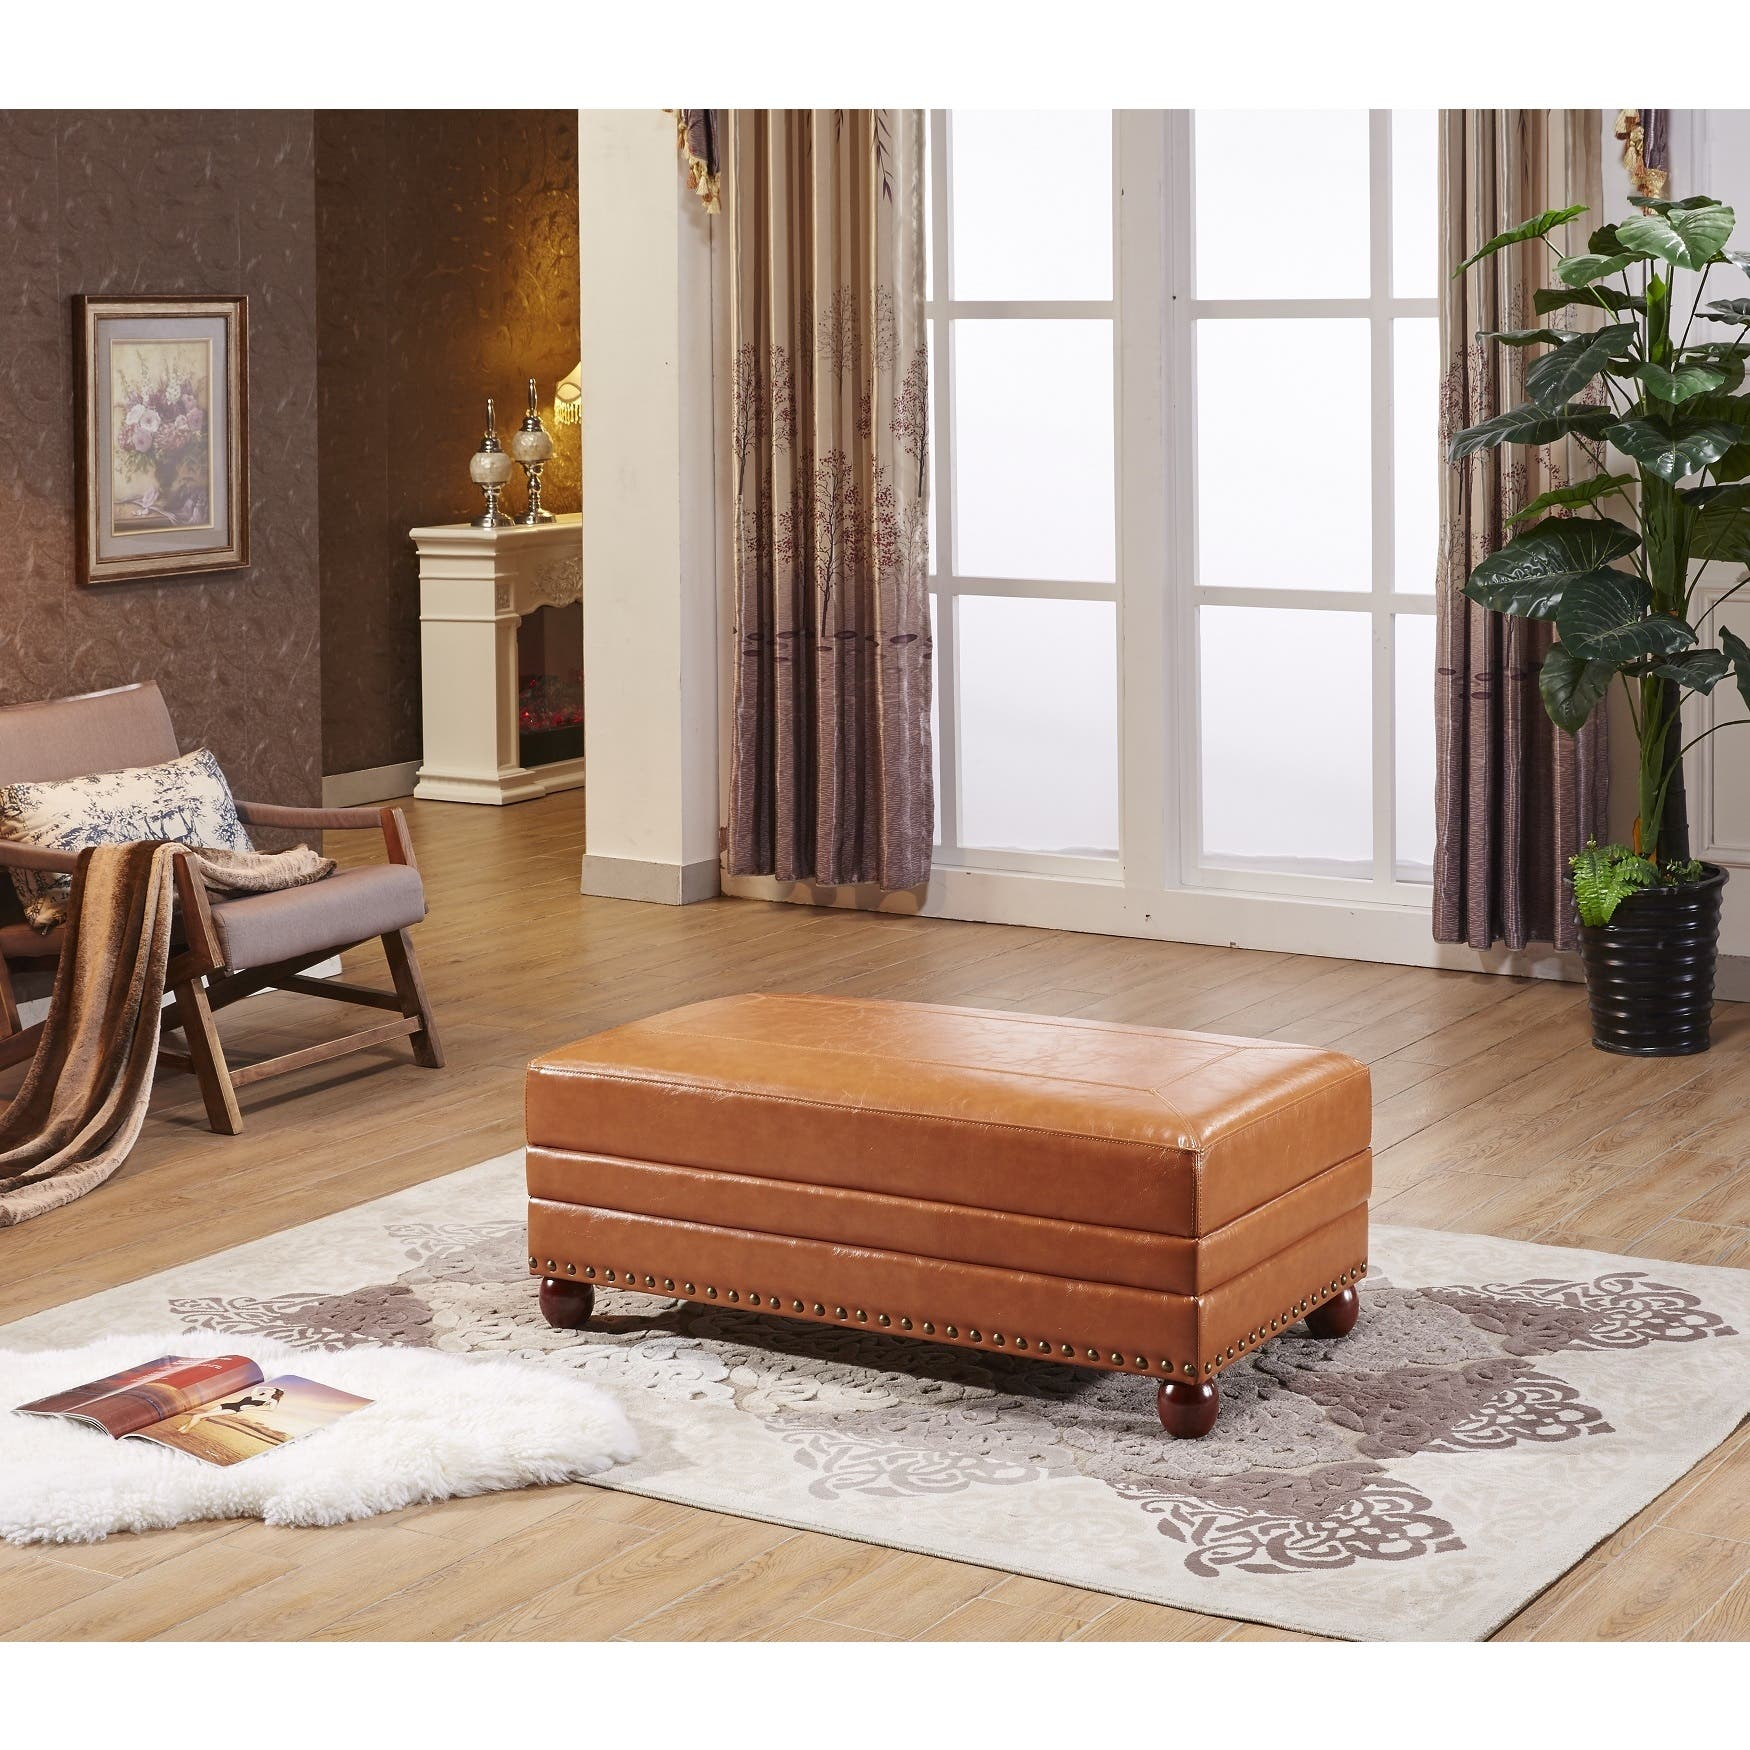 Buy Settees Online: Buy Benches & Settees Online At Overstock.com